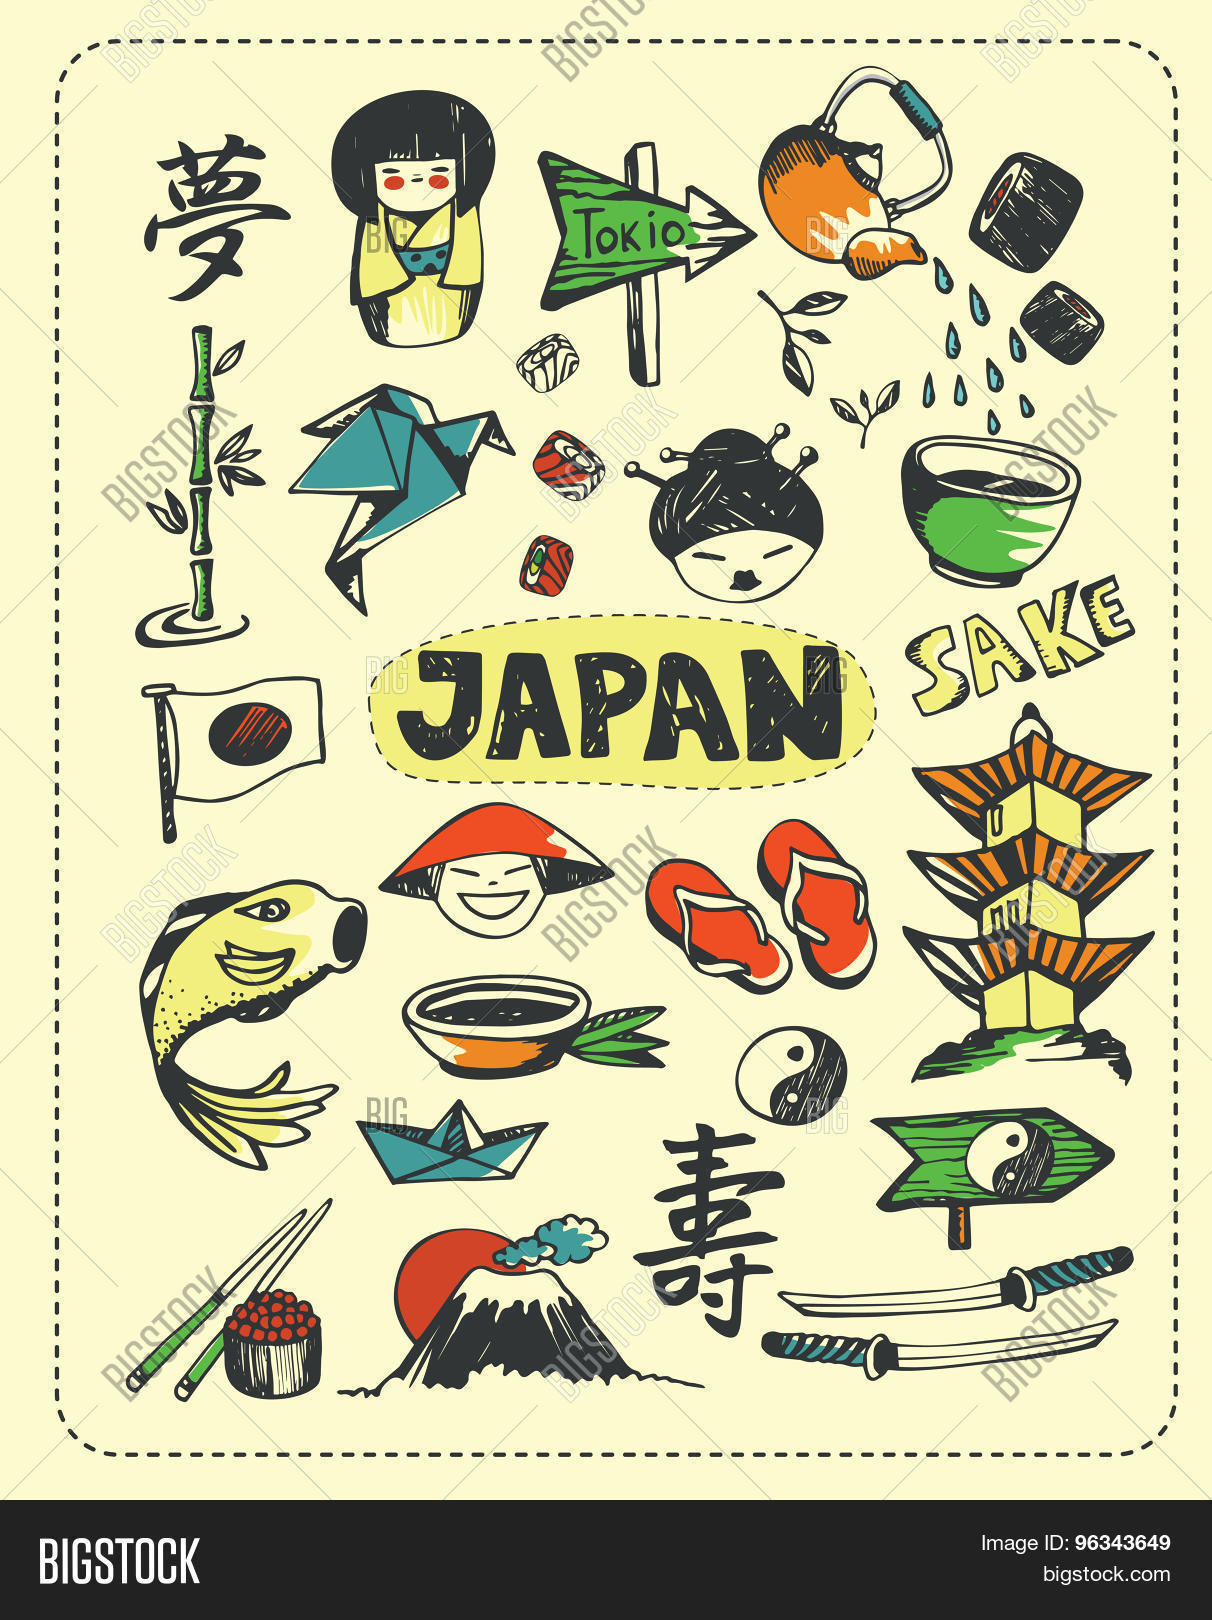 Sketch Of Japan Tradition Object Collection Of Japan Culture Objects Handdrawn Japan Il Ration Japan Pa A Traditional Elements Of Japan Culture